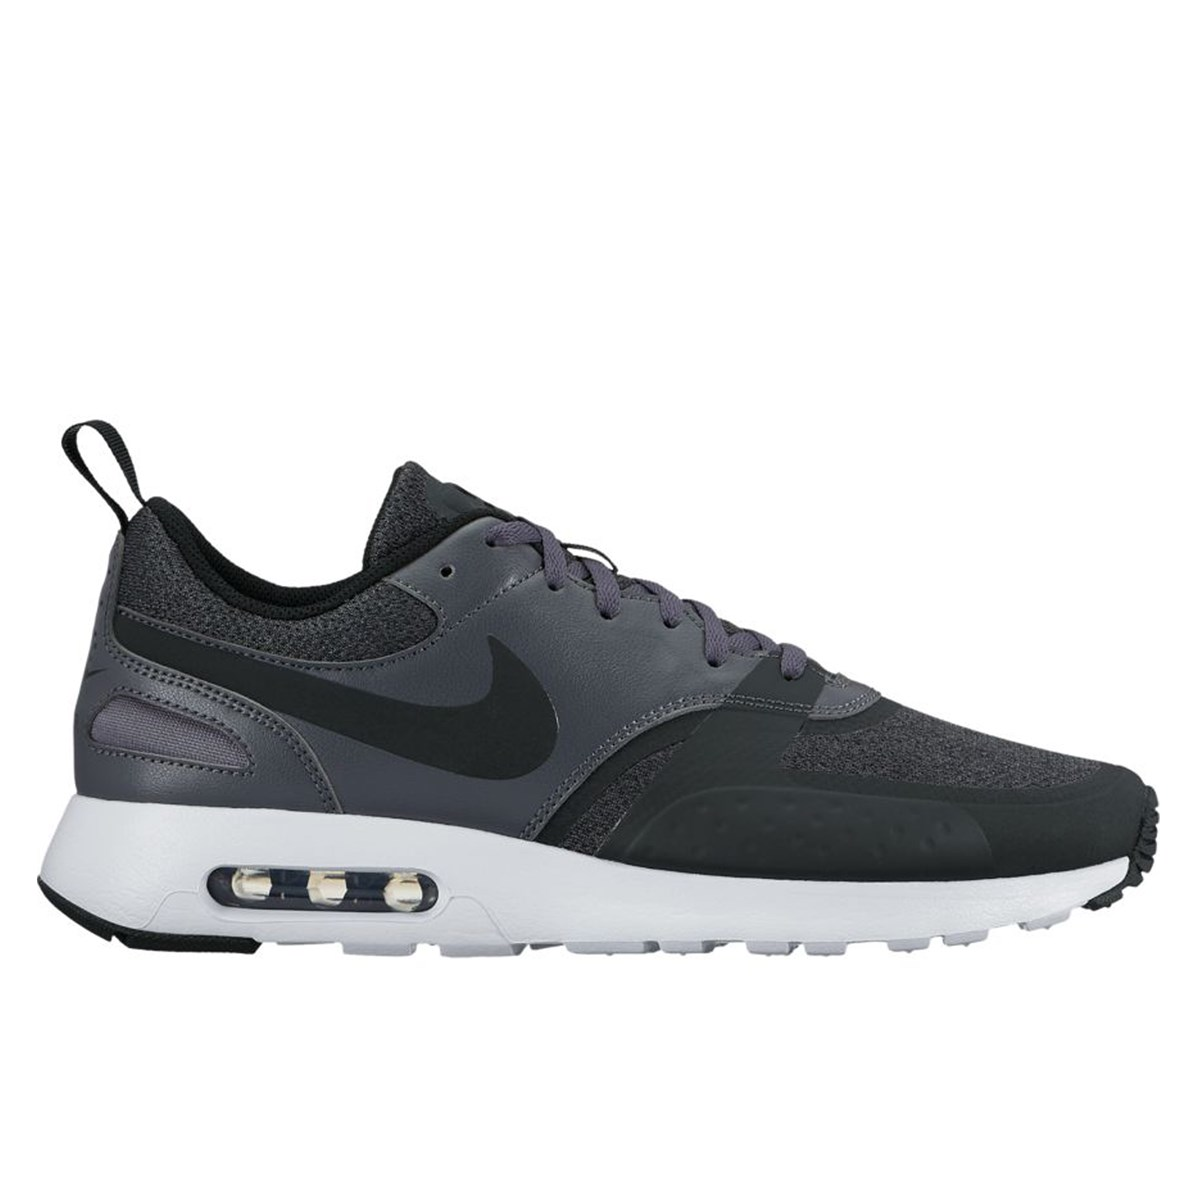 release date af5ab 9487b MC   Men s Air Max Vision SE Anthracite Black Sneaker   Little Burgundy